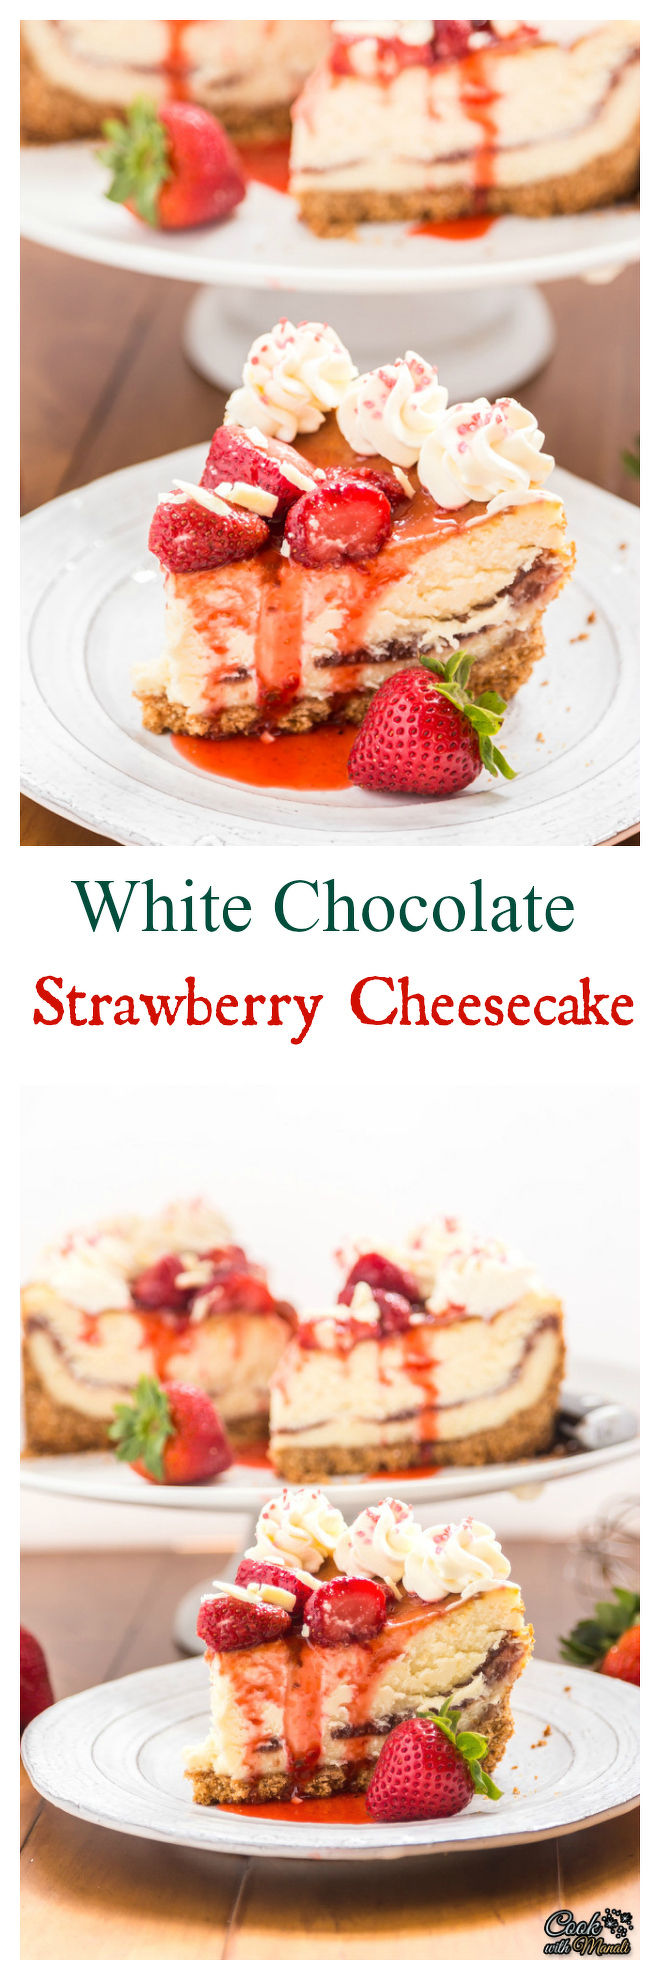 White Chocolate Strawberry Cheesecake Collage-nocwm